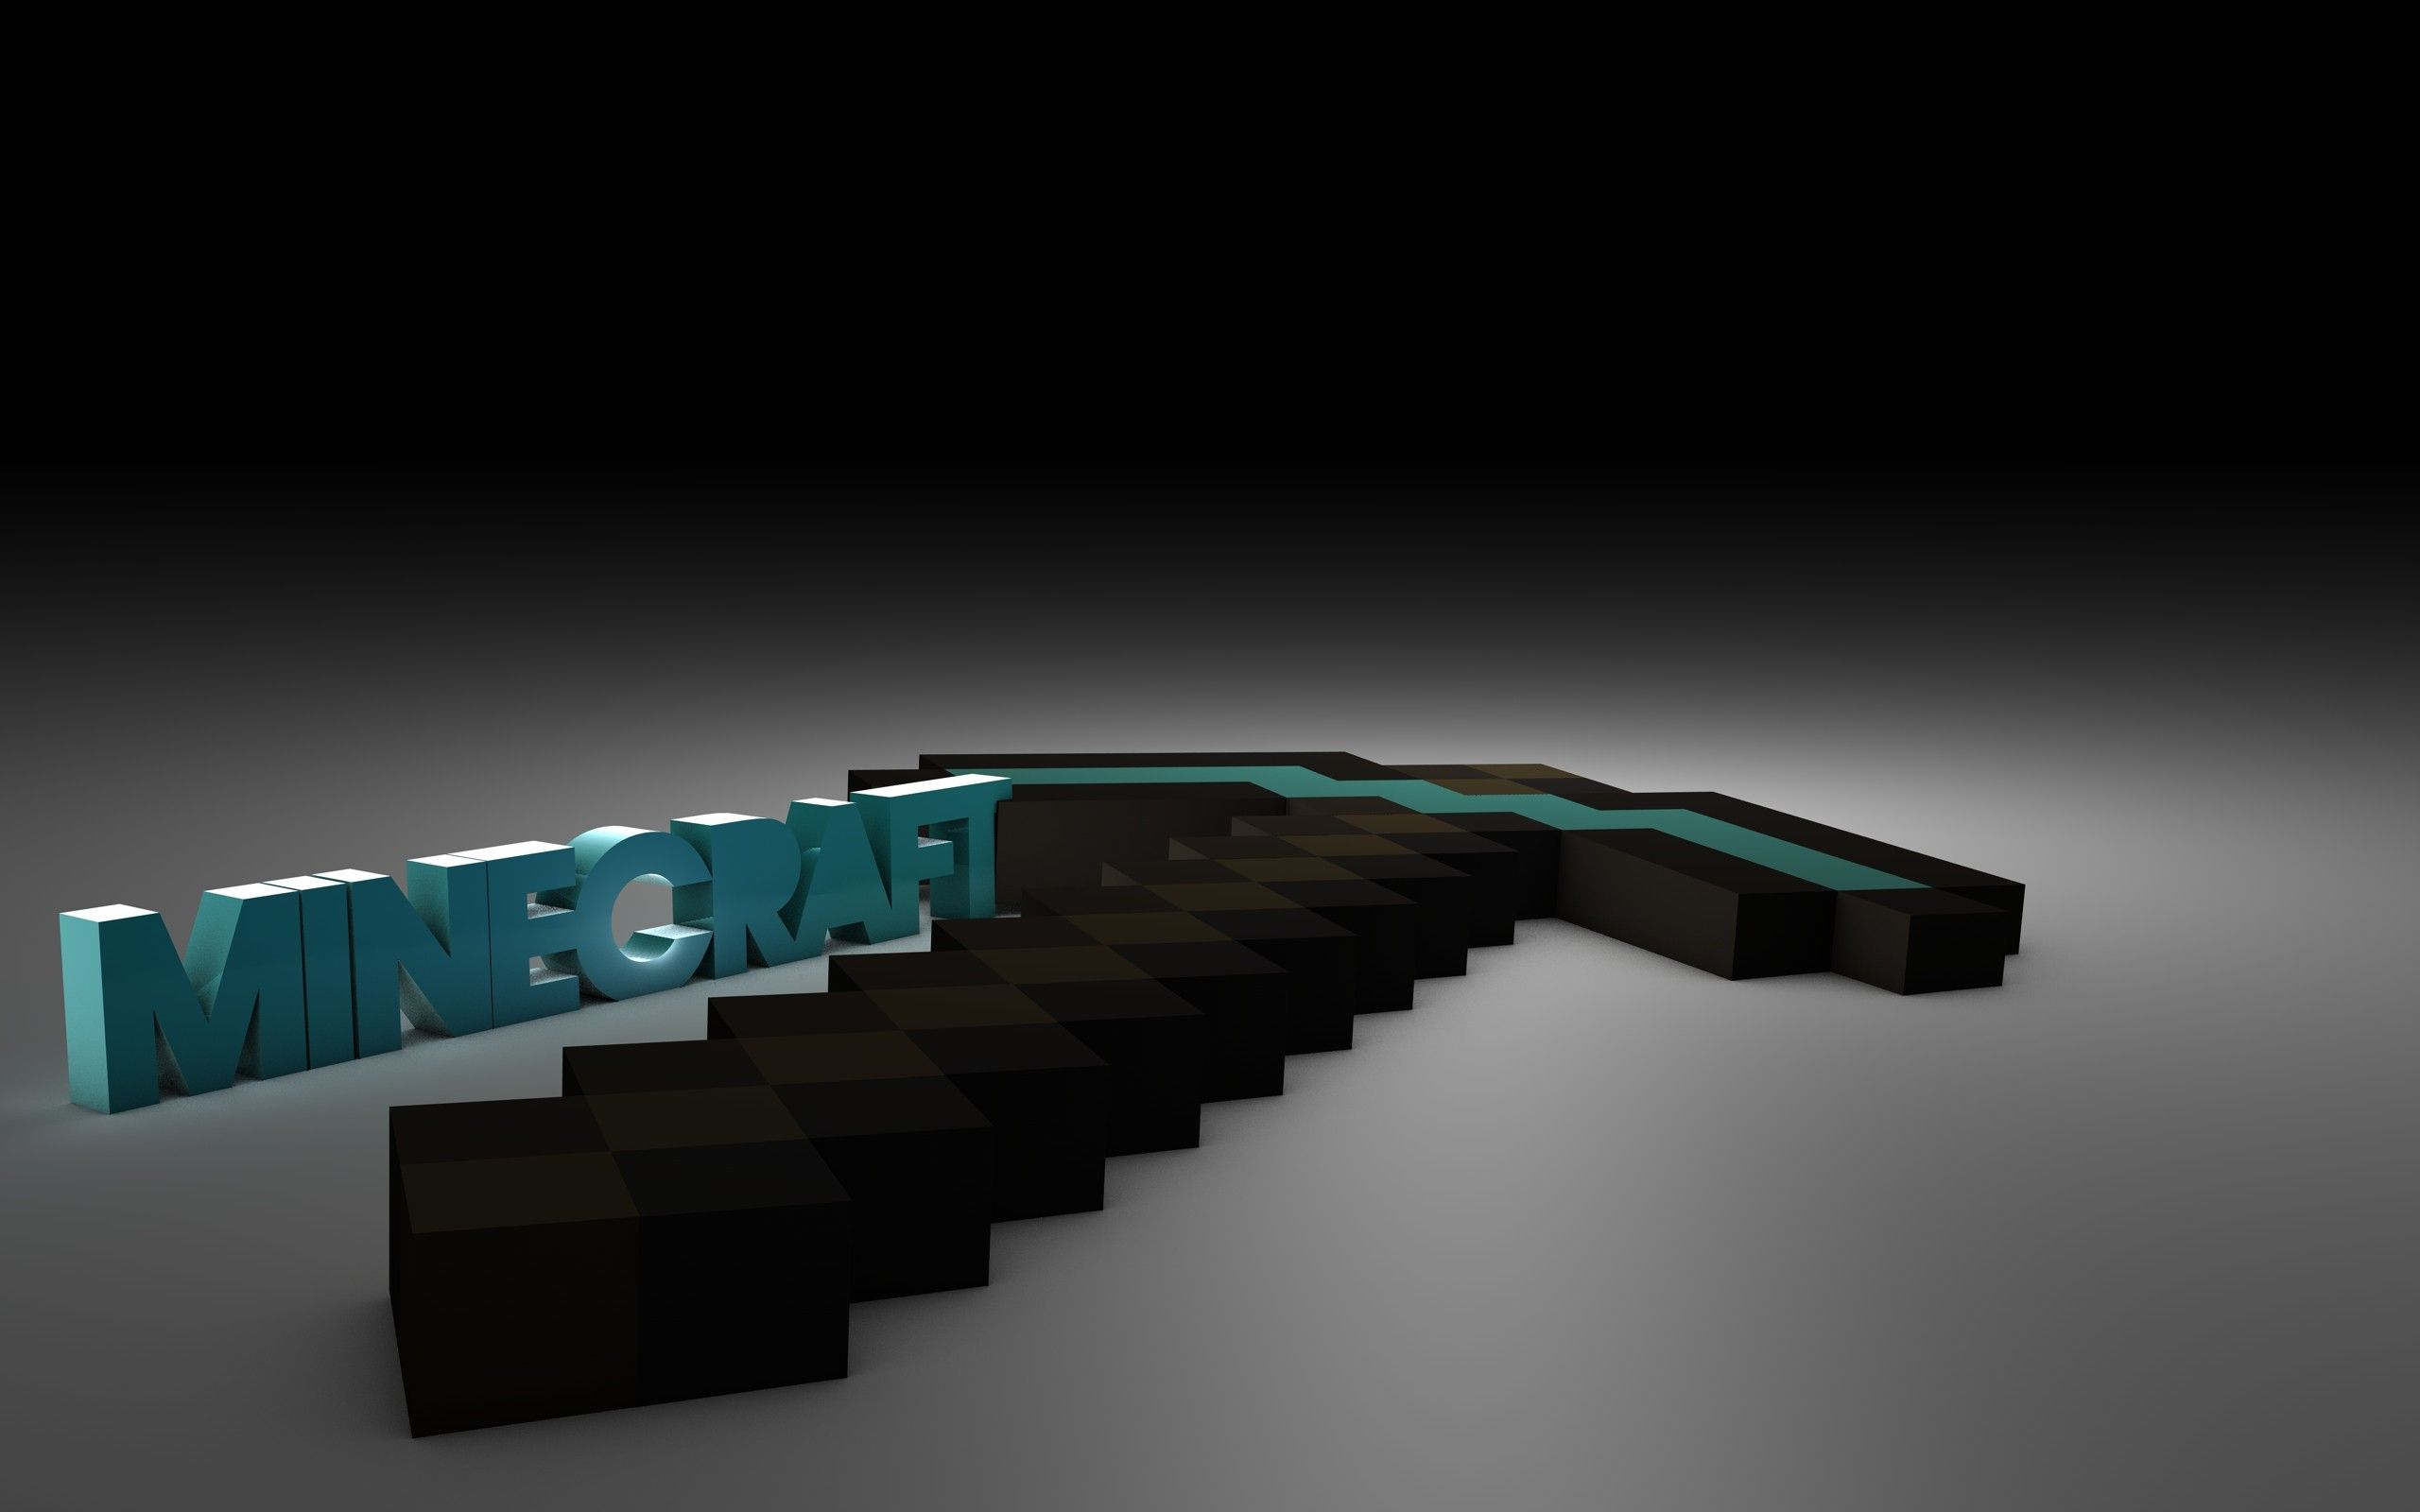 3d Diamond Pickaxe Minecraft Wallpaper Pictures Cool Backgrounds